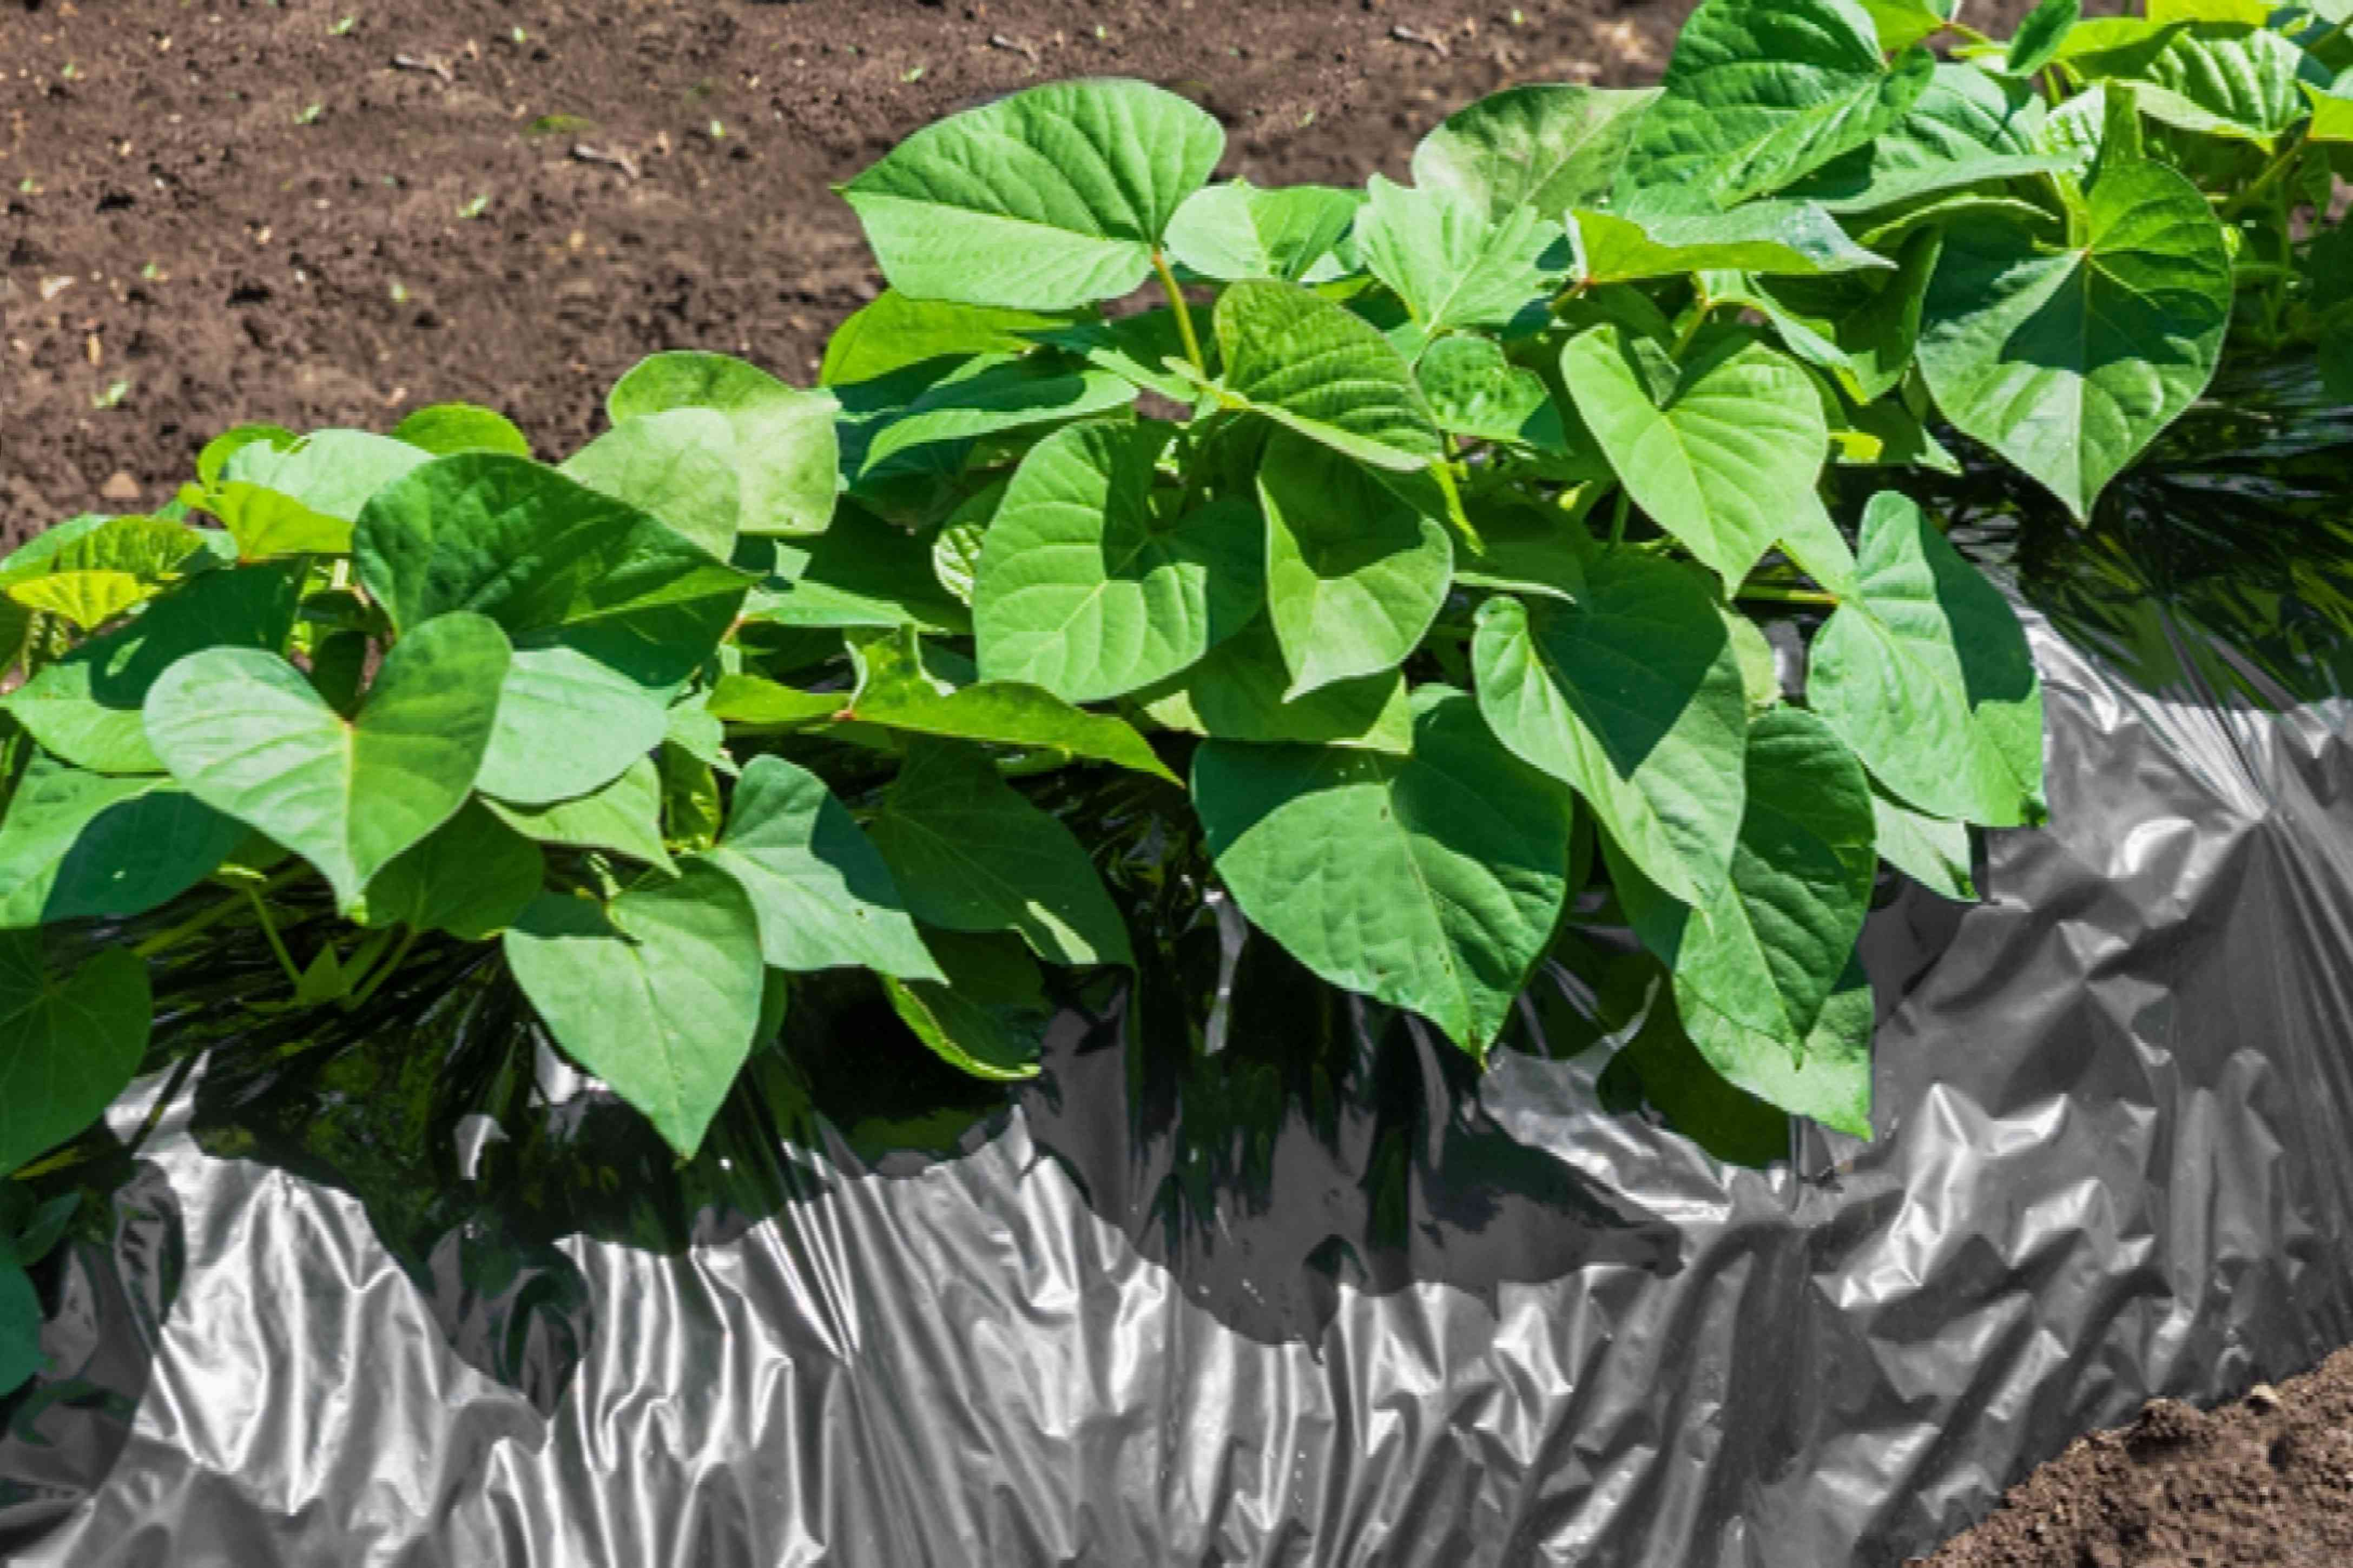 close view of sweet potato greens and vines in ground with black tarp covering